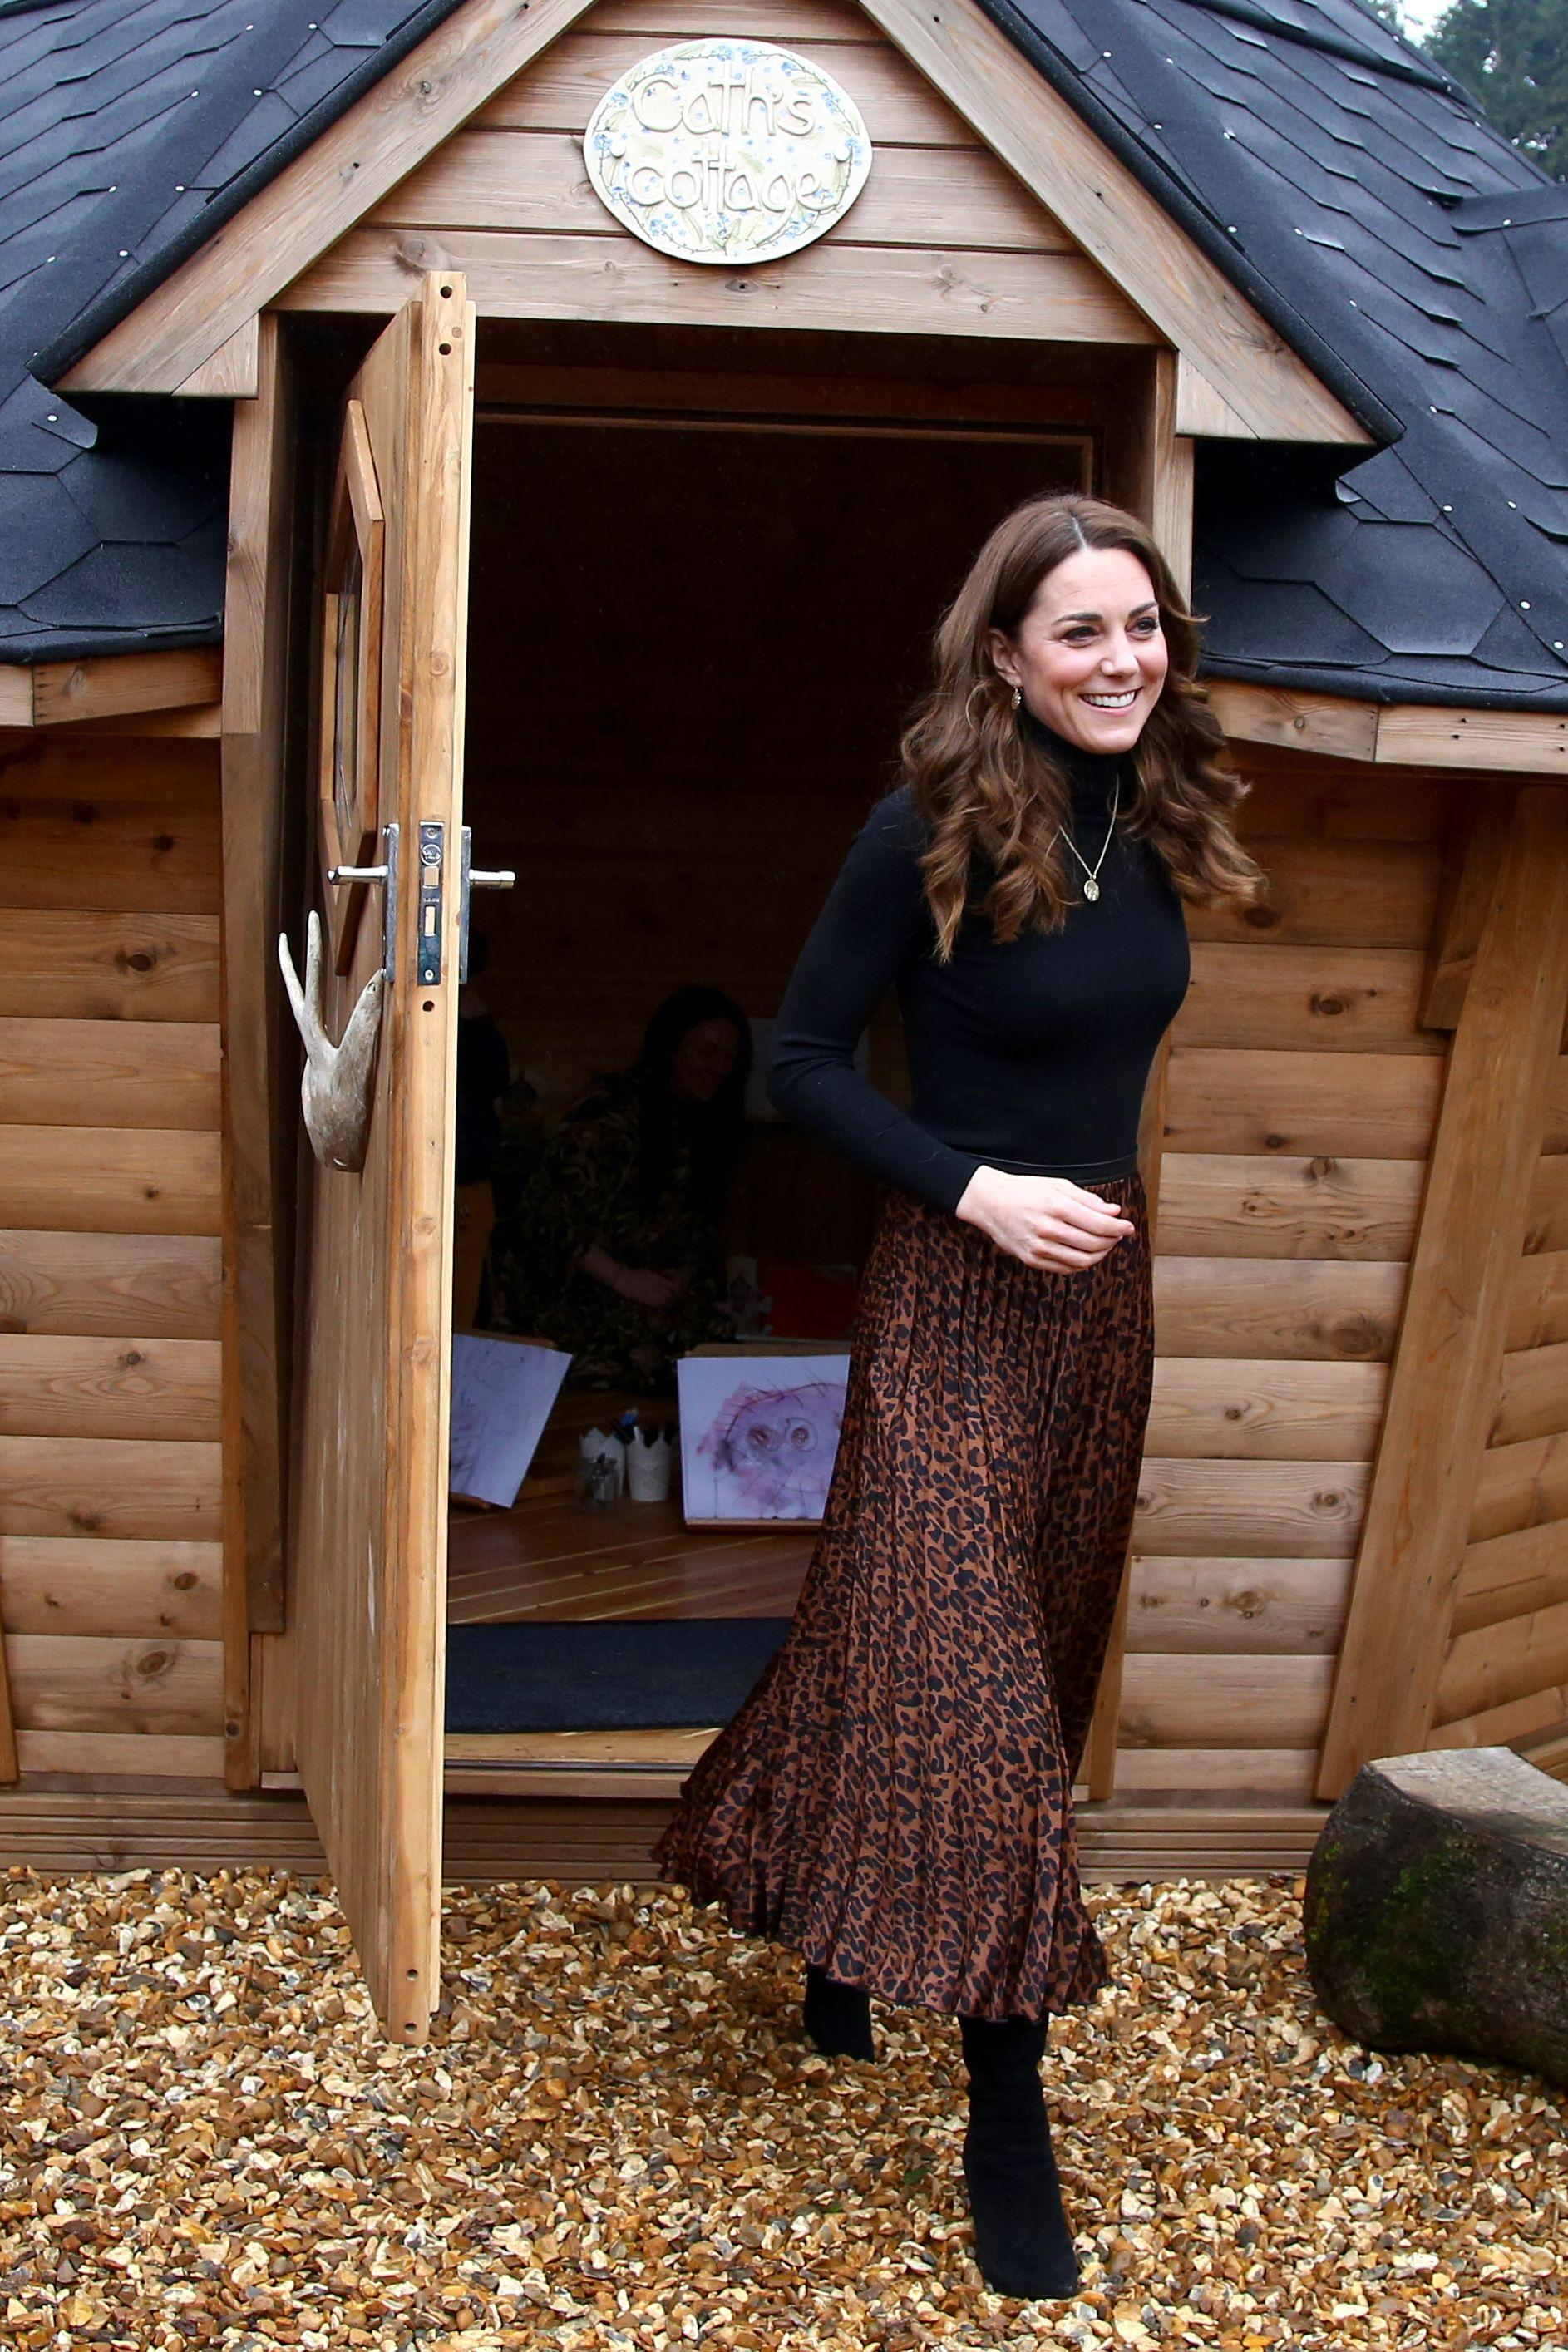 Once inside the centre Kate showed off the leopard print skirt, which she paired with a black jumper. [Photo: Getty]